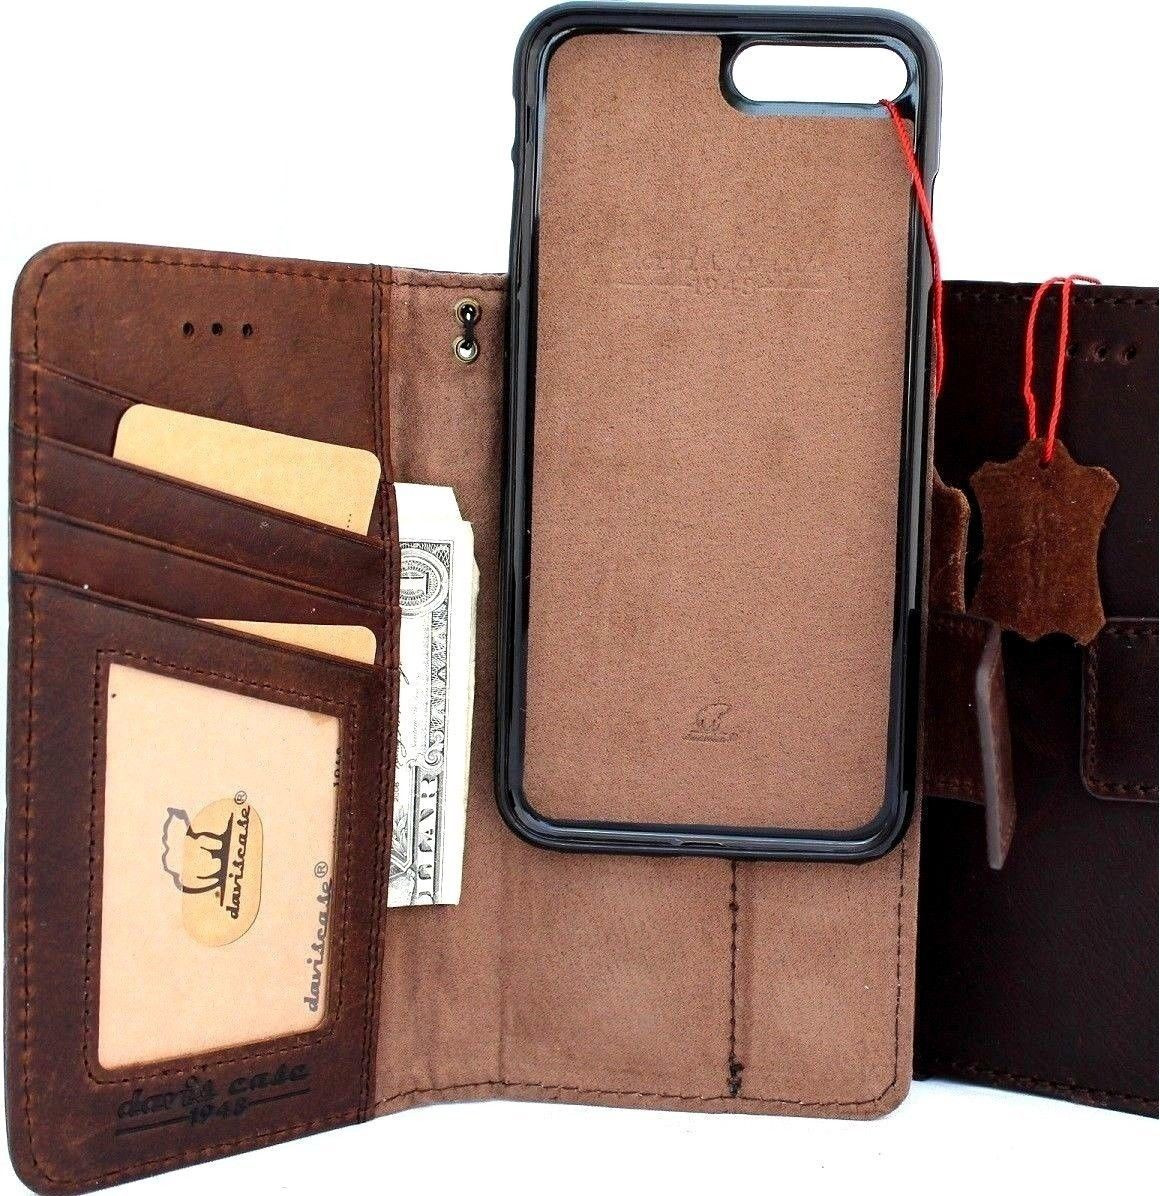 save off 4dded 3ea70 Genuine leather Case for iPhone 8 Plus book wallet cover detachabl magnetic  holder vintage Removable style Jafo 1948